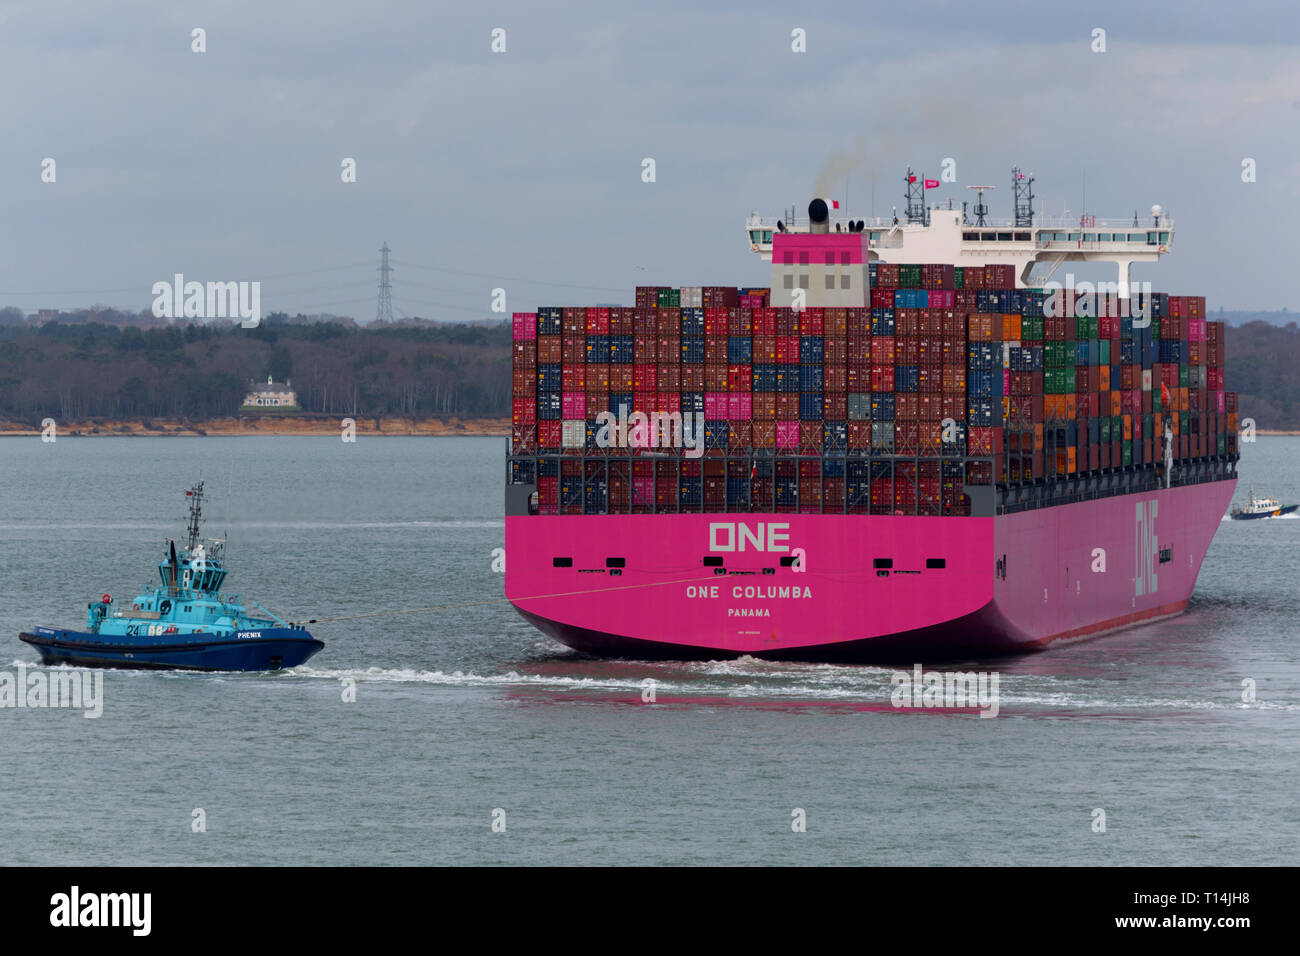 Ship, One,Container, Columbia, Panama, The Solent,heading,to, Southampton,Container Terminal, Cowes, Isle of Wight, Hampshire, England, UK, Stock Photo